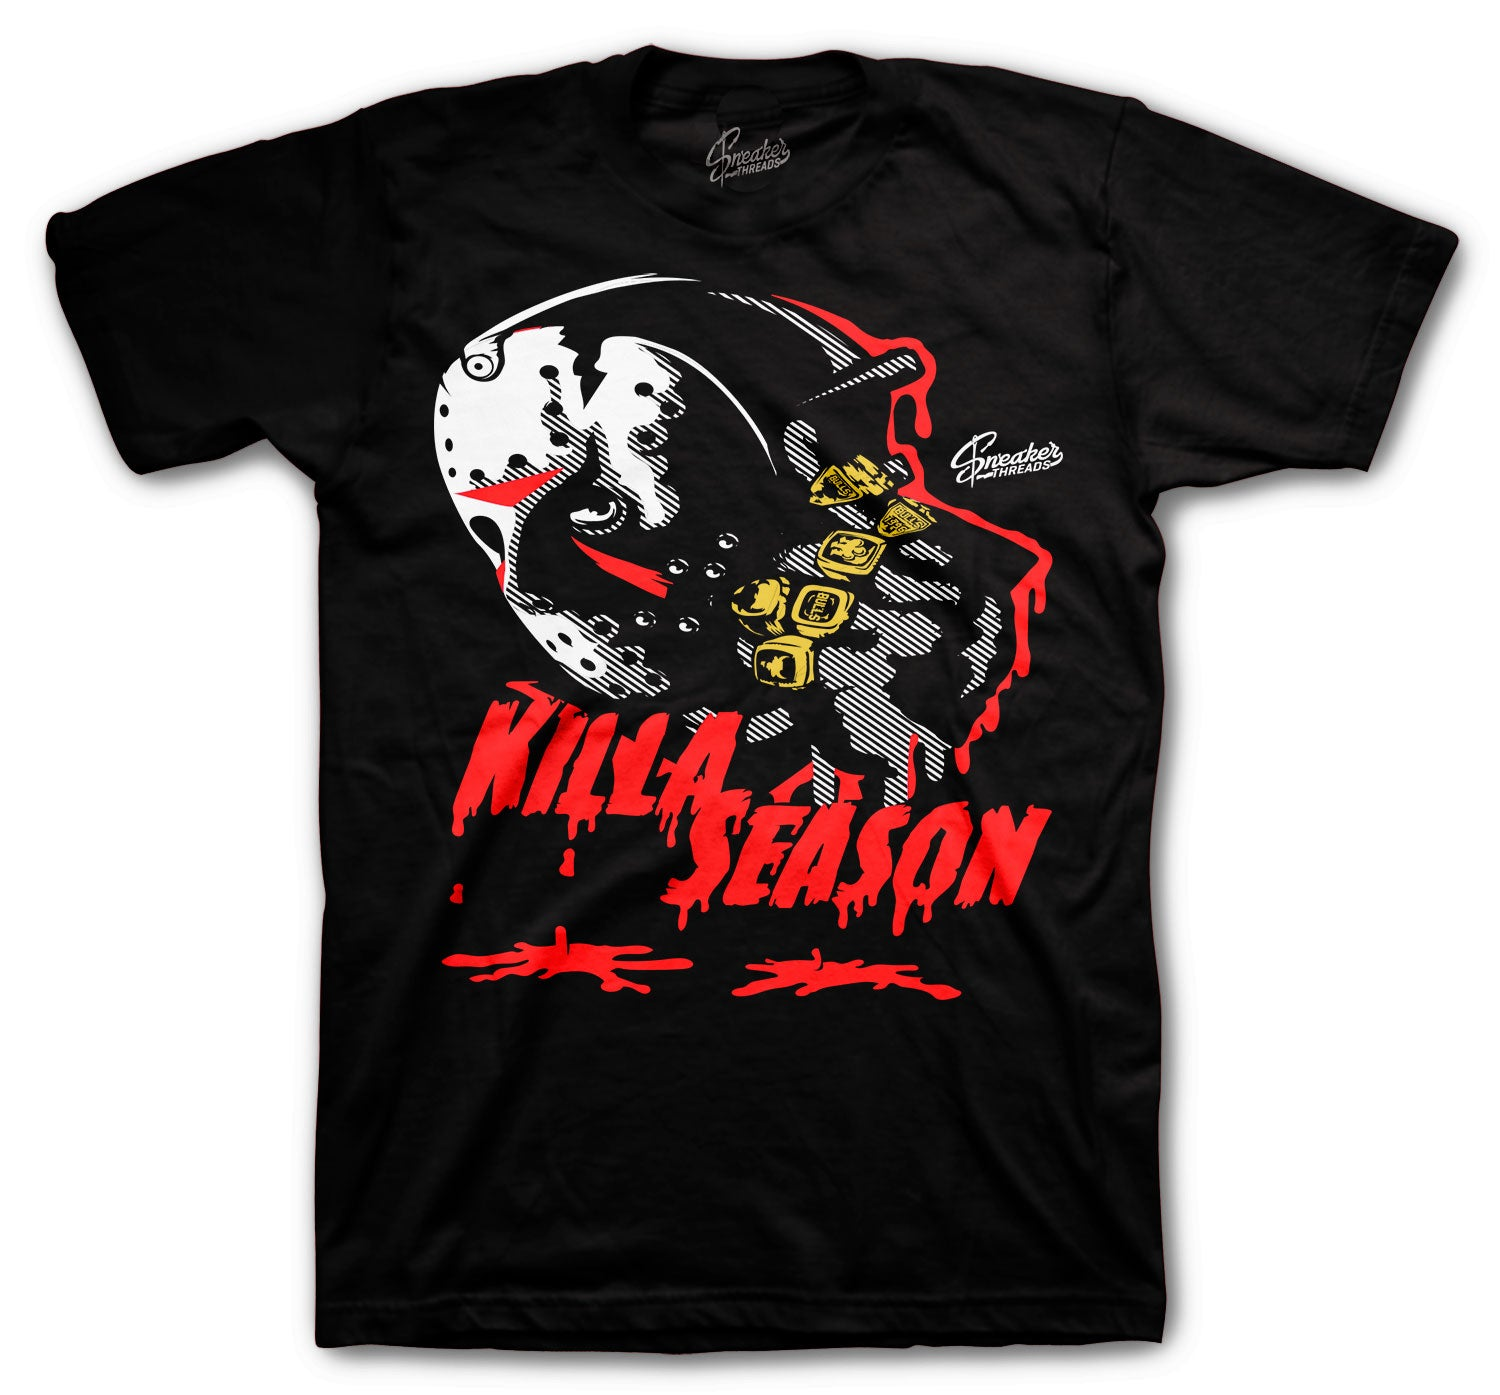 Jordan 6 Carmine Shirt - Killa Season - Black